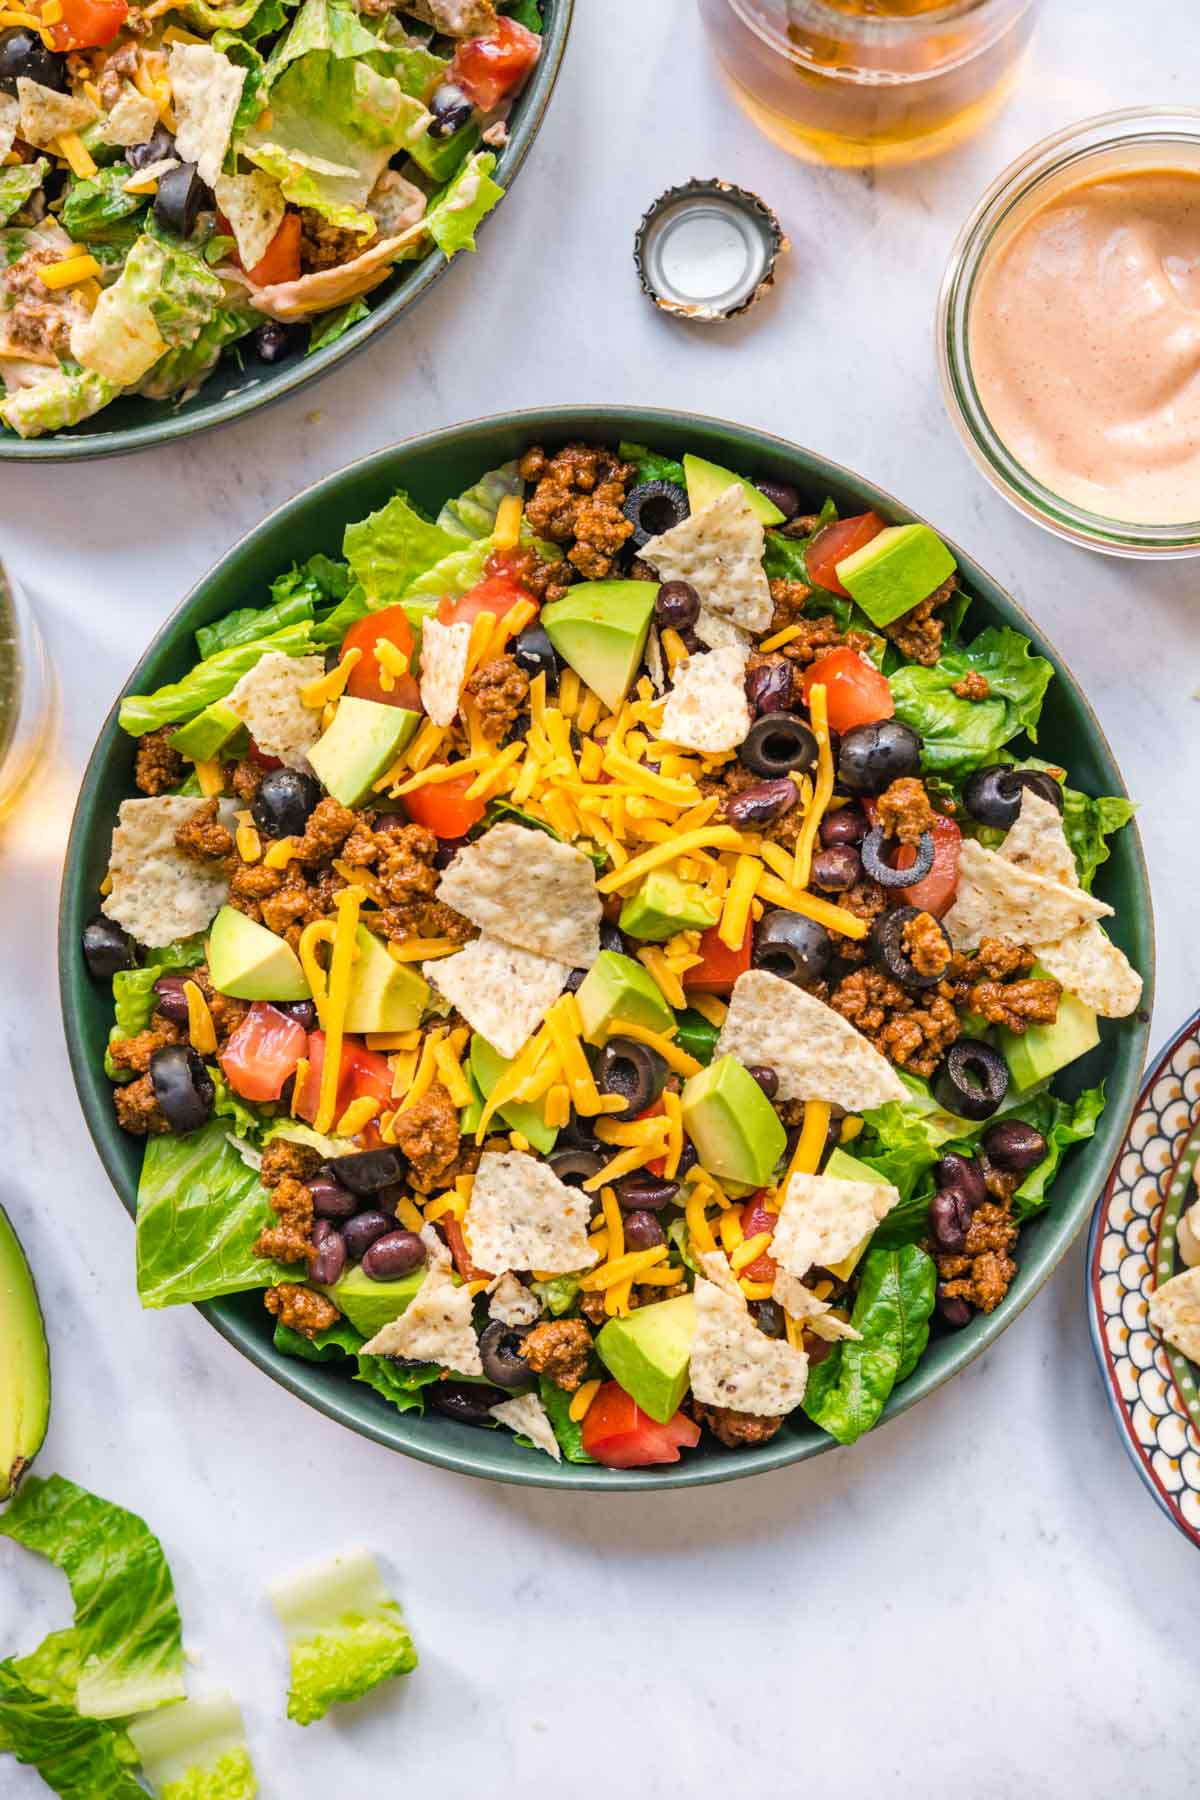 Assembled Taco Salad in bowl with lettuce, black beans, seasoned ground beef, shredded cheese, avocado.